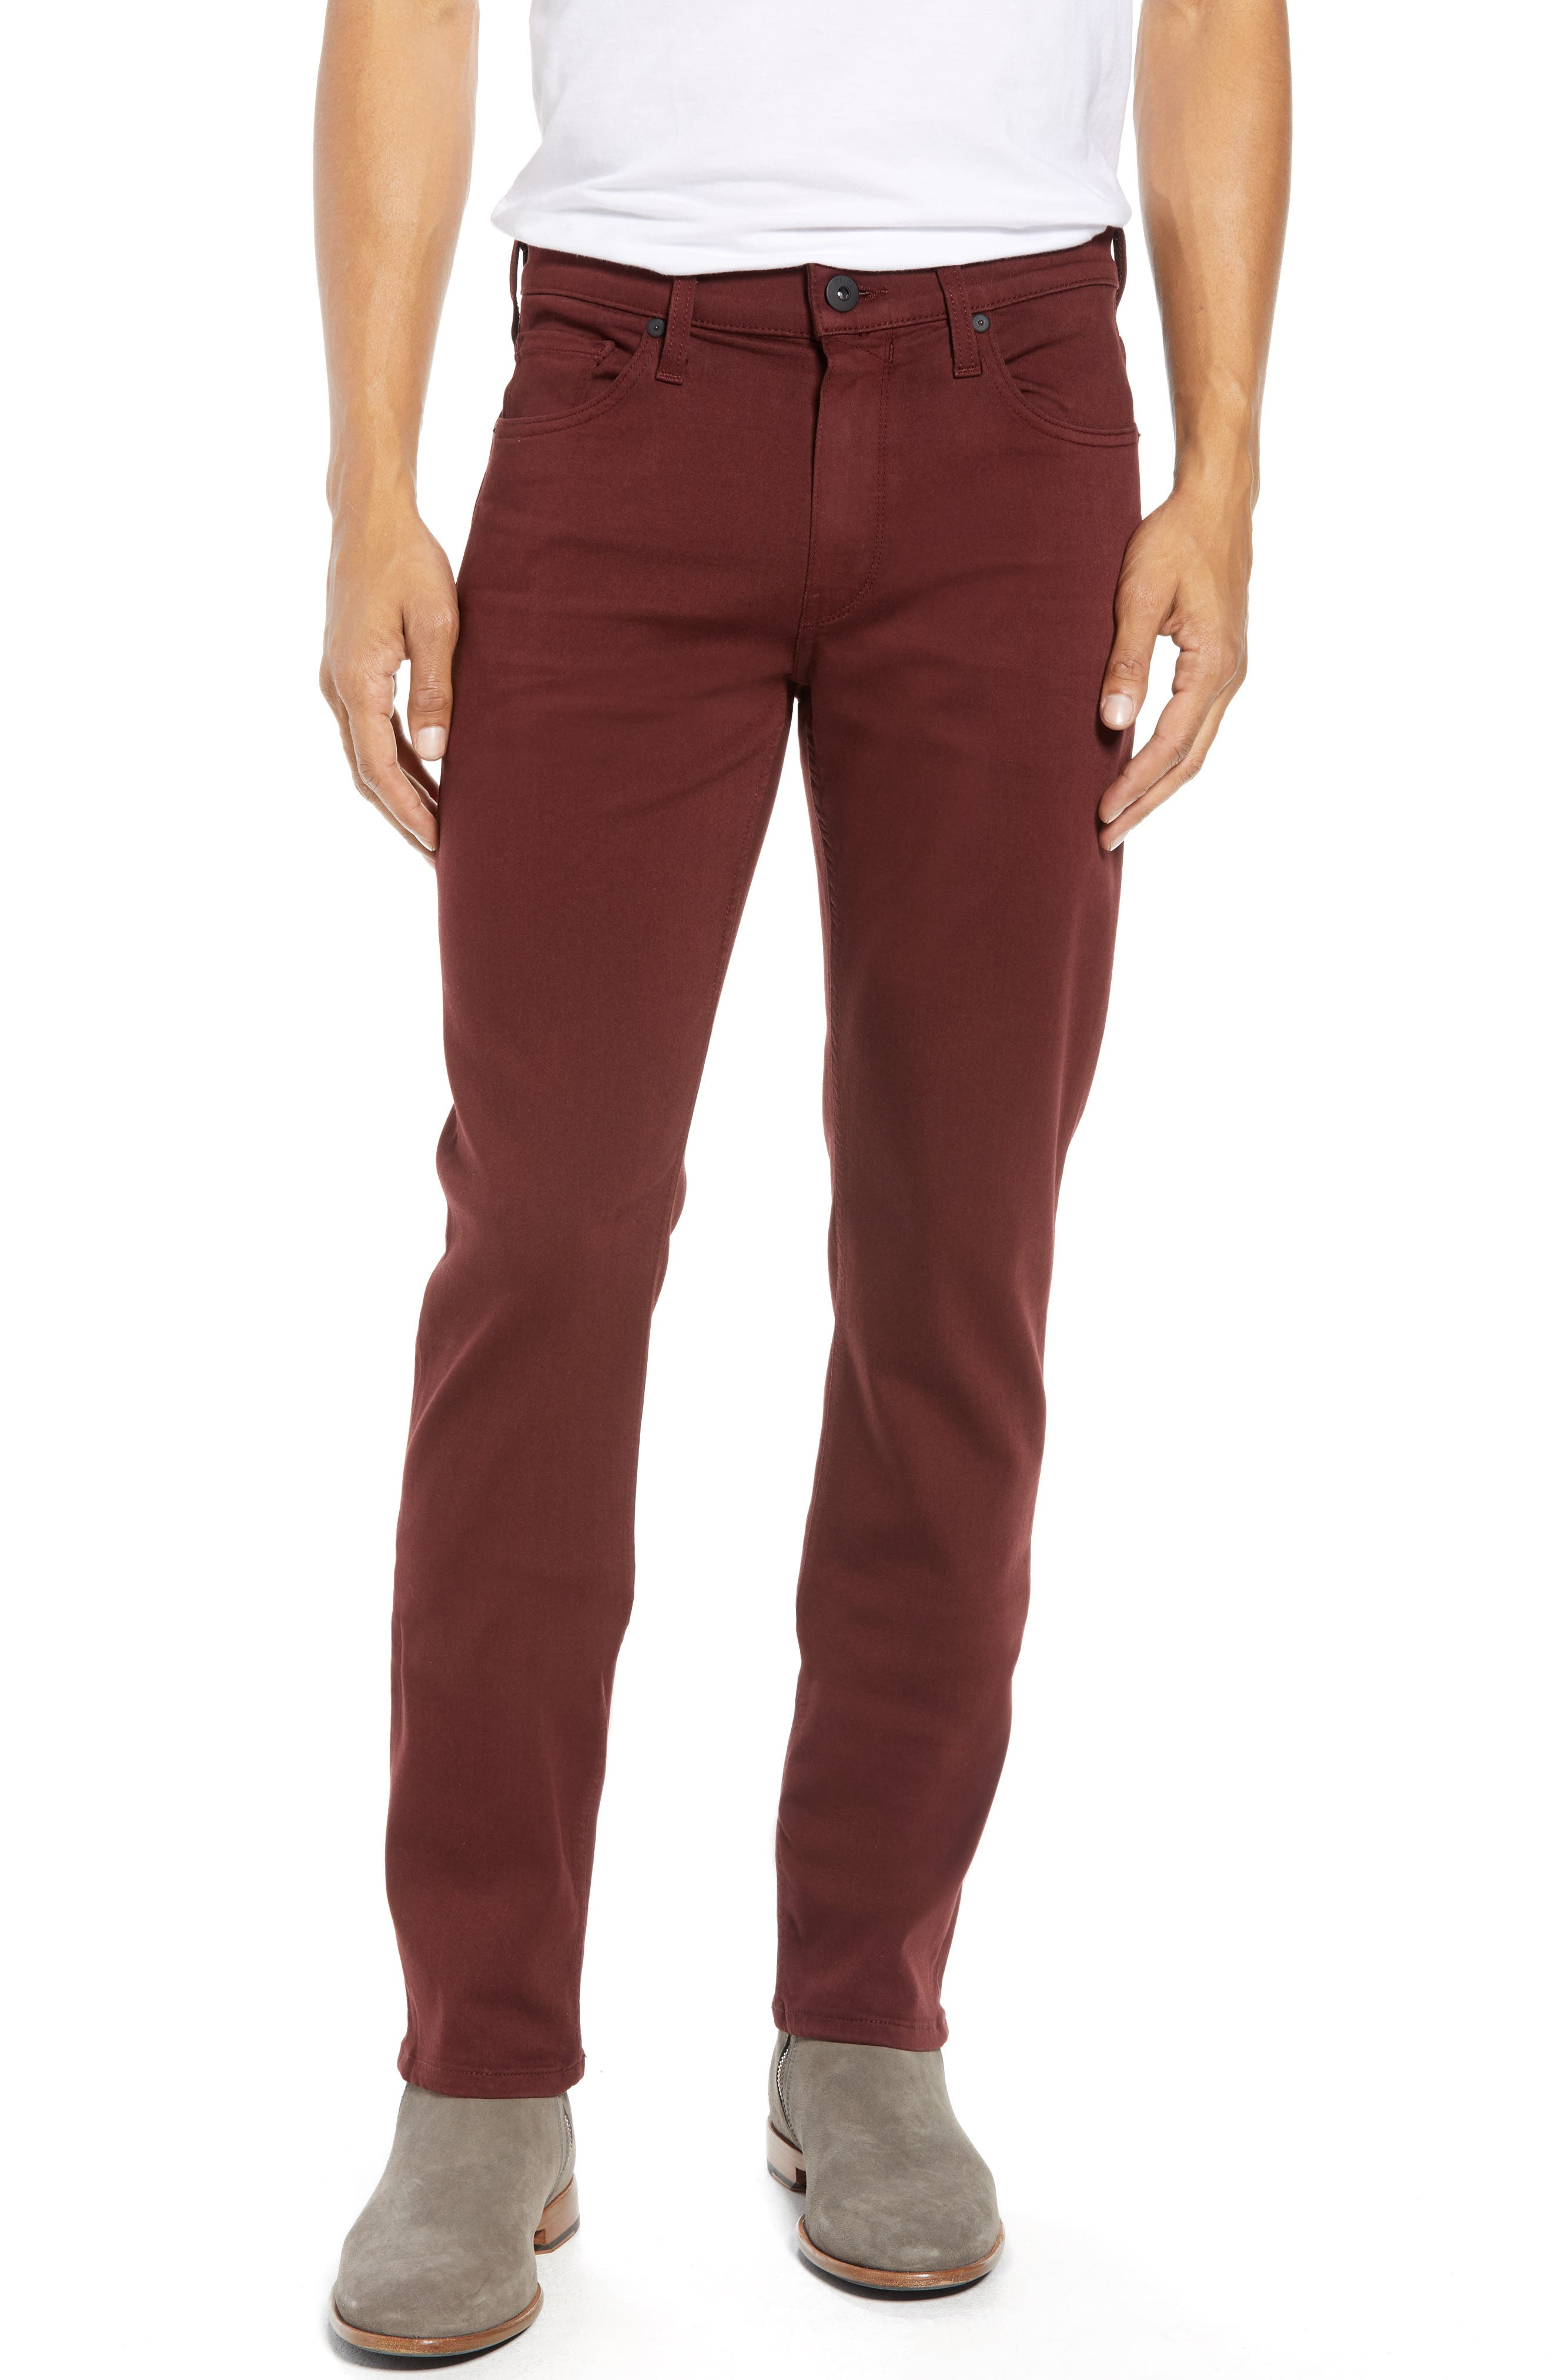 Transcend - Federal Slim Straight Leg Jeans,                         Main,                         color, RUSTIC WINE